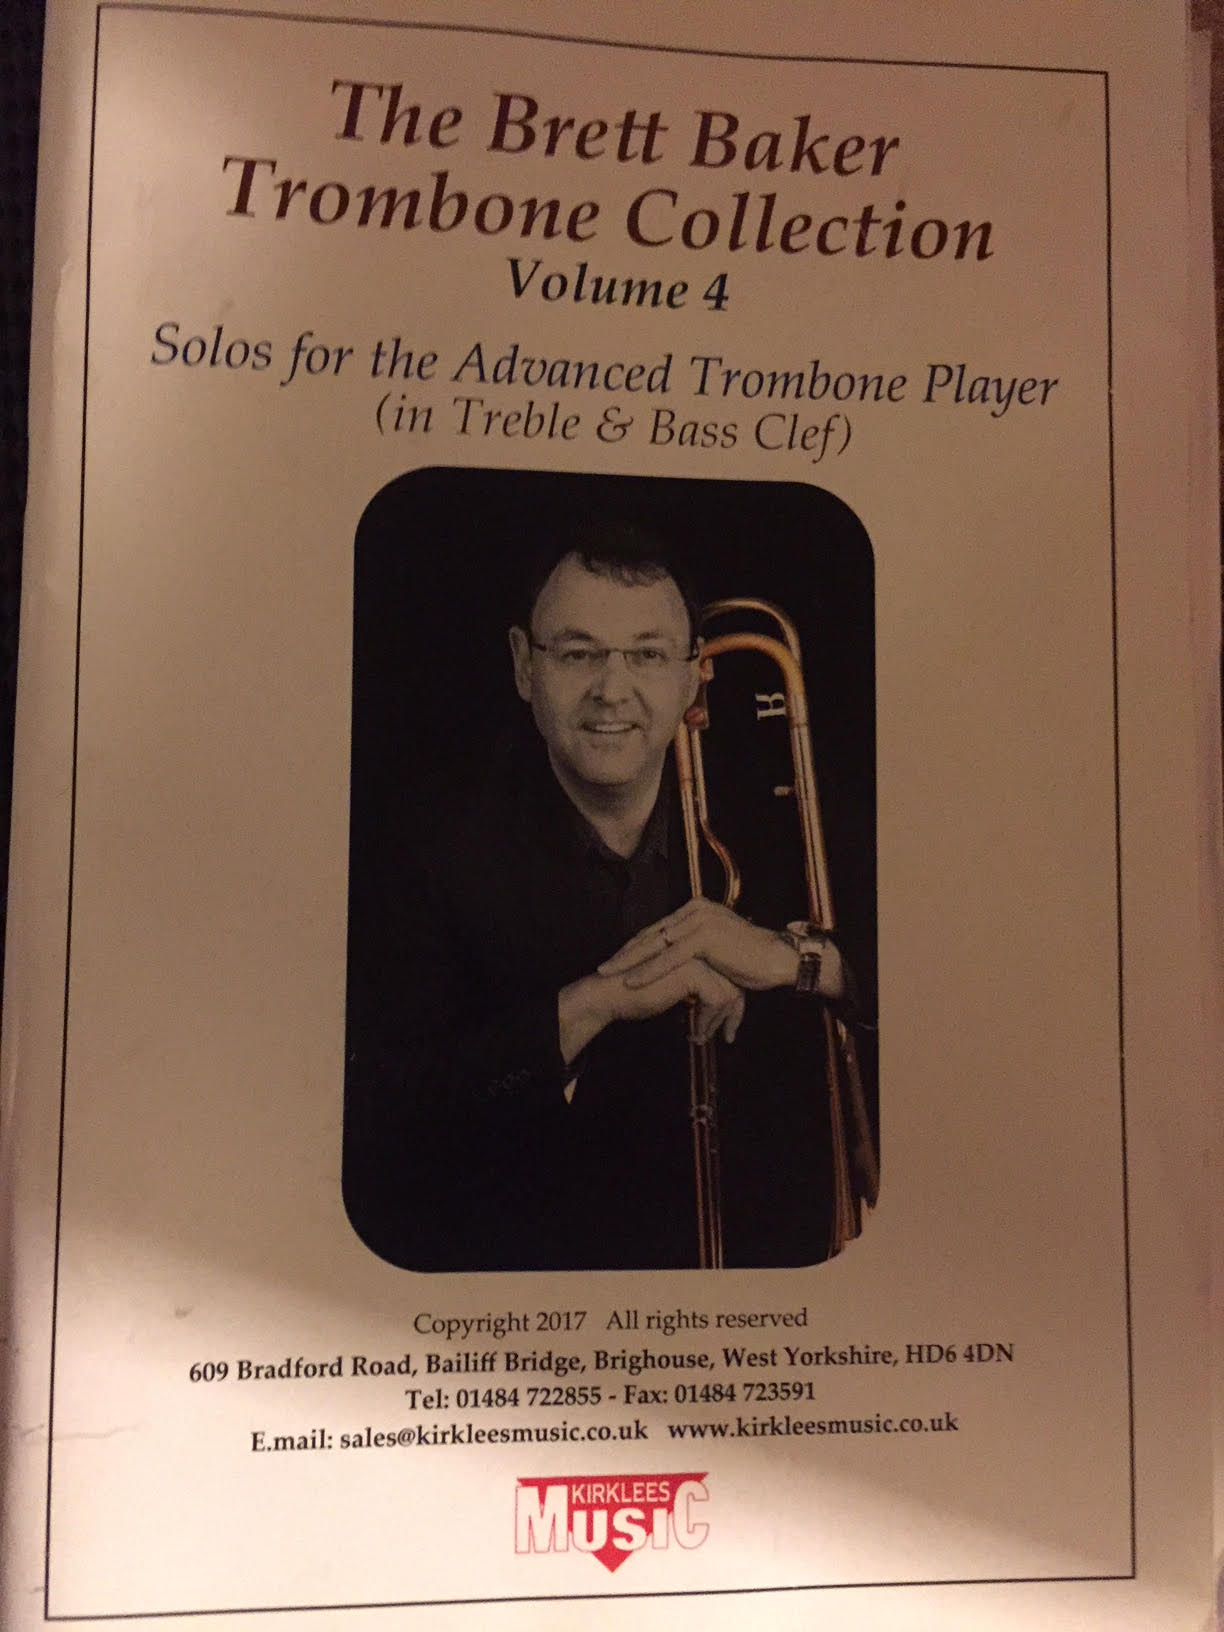 Sheet Music - The Brett Baker Trombone Collection Vol. 4